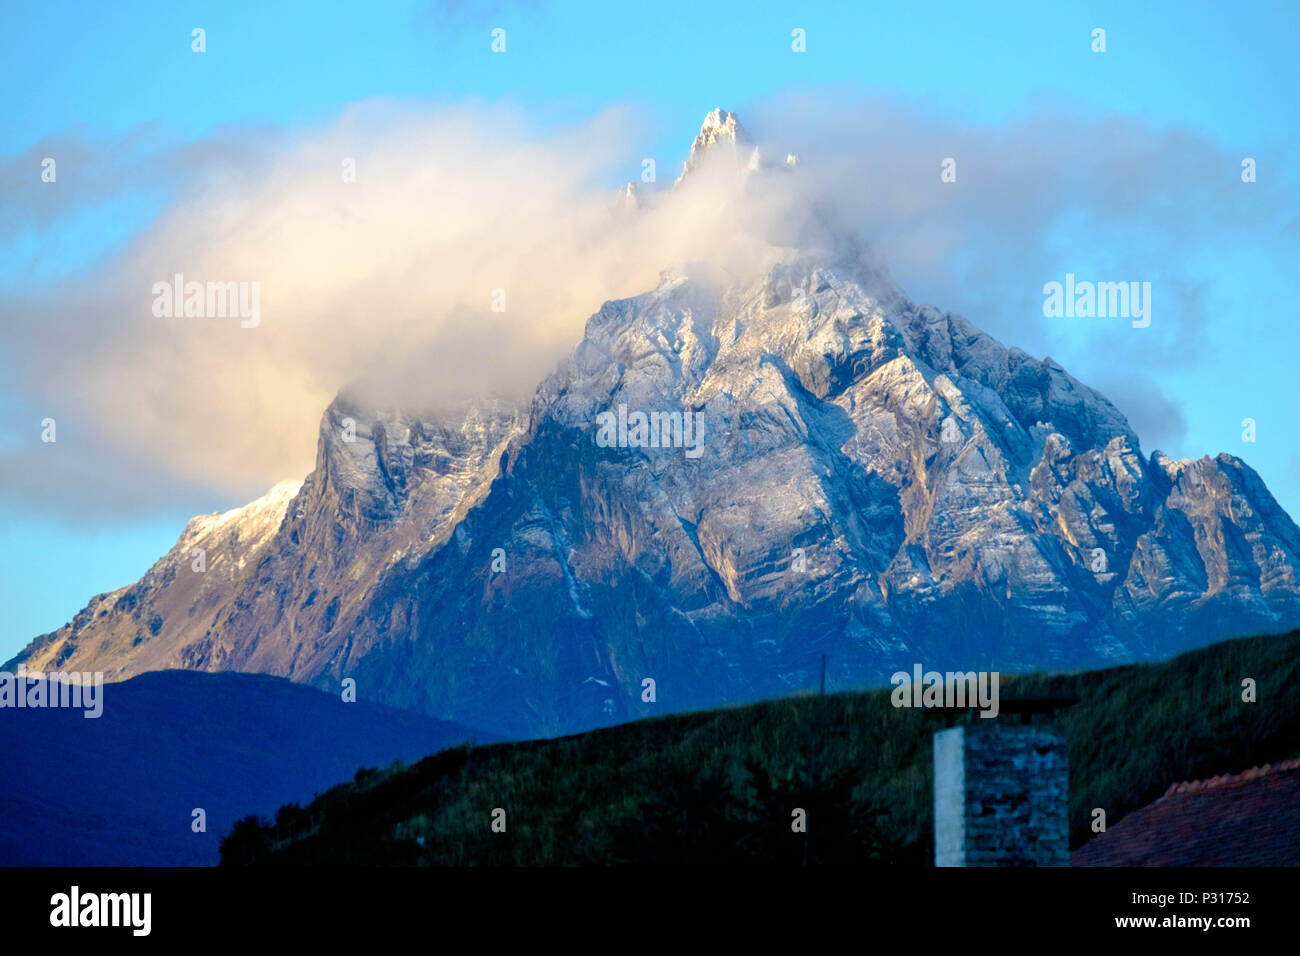 Monte Olivia is looking down on the city of Ushuaia. This sharp-headed mountain is the highest and most impressive one of Ushuaia. Stock Photo